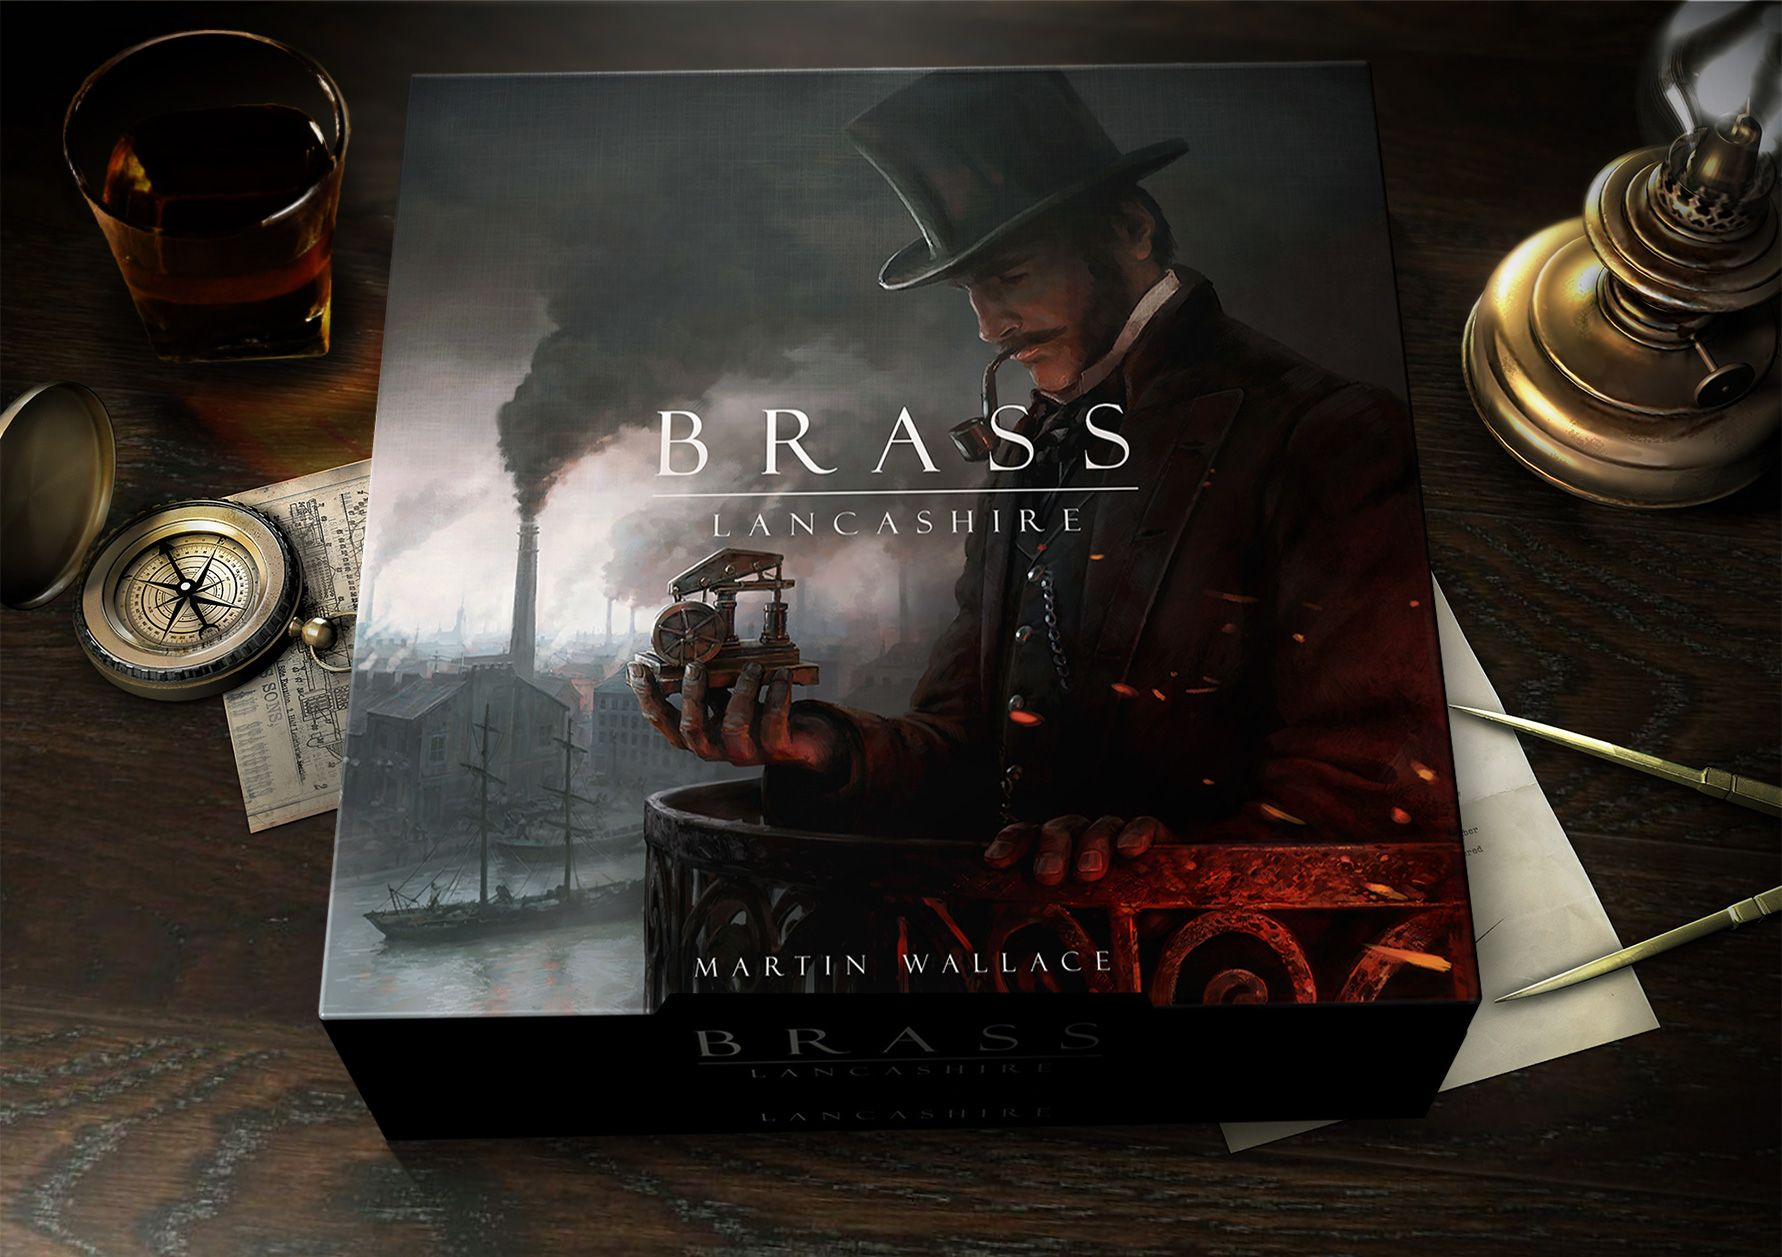 Brass Lancashire Image BoardGameGeek (With images)